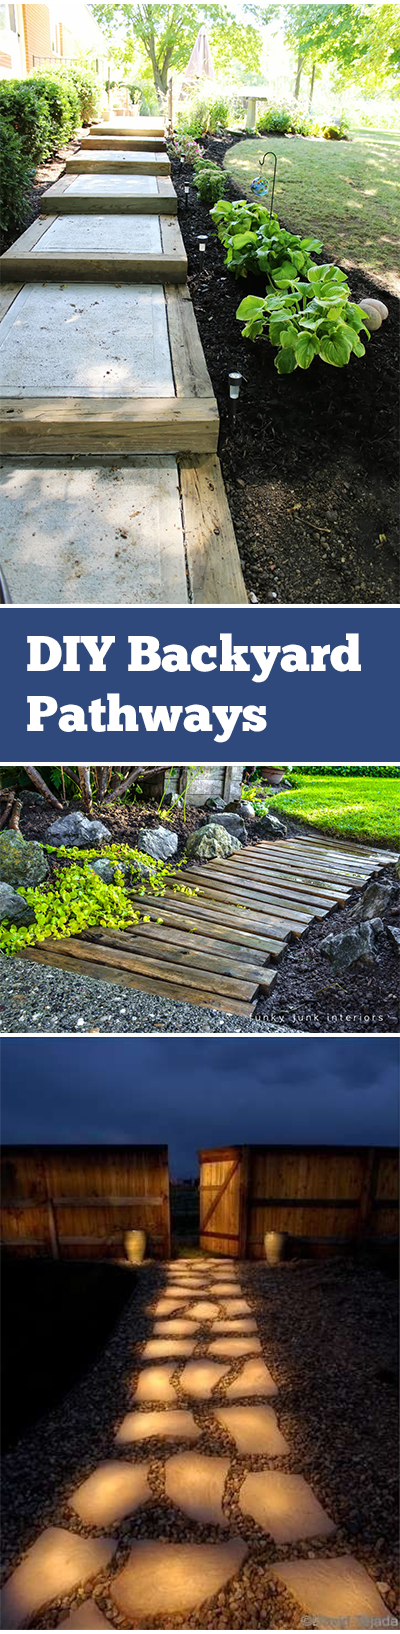 DIY Backyard Pathways| Backyard Pathway Ideas, Pathway Ideas, Backyard Ideas, Backyard Pathway Ideas DIY, Backyard Pathways Cheap, Outdoor Pathway Ideas, Outdoor DIY, OUtdoor Ideas, Yard Ideas, Yard DIY, Lanscaping Ideas #BackyardPathwayIdeas #PathwayIdeas #BackyardPathwayIdeasDIY #YardDIY #OutdoorDIY